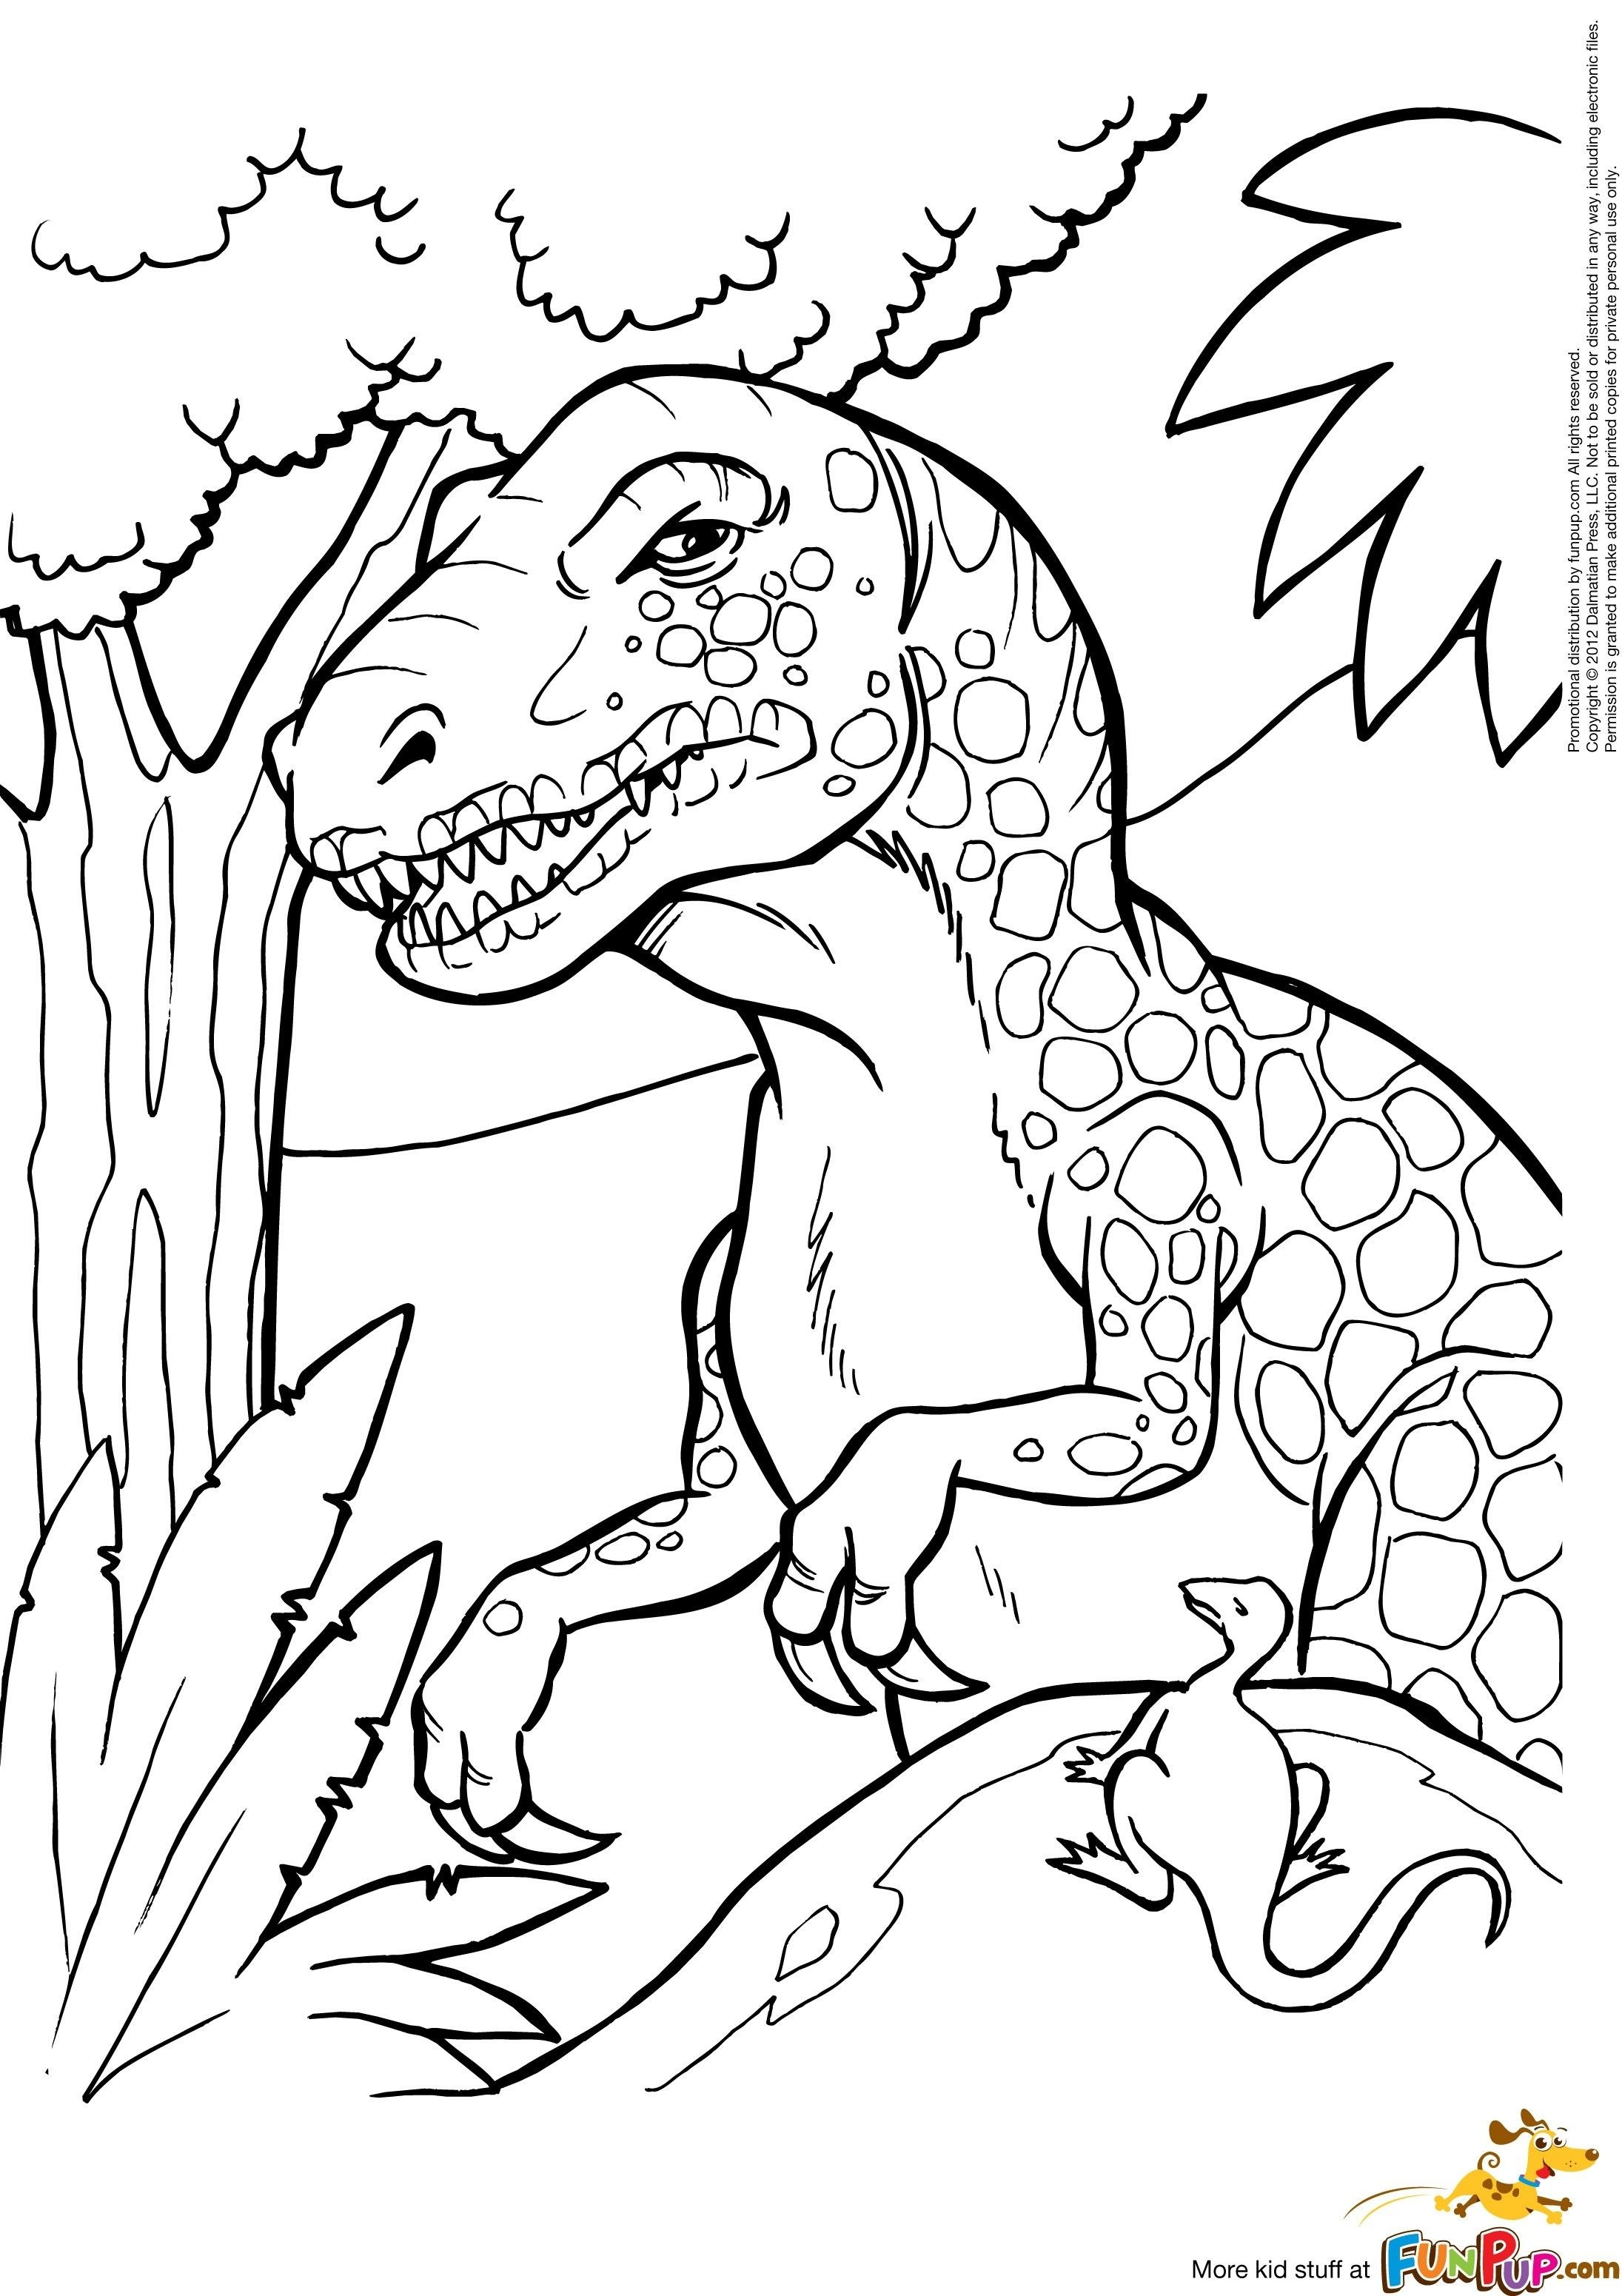 2191x3101 Indominus Rex Coloring Page Free Draw To Color